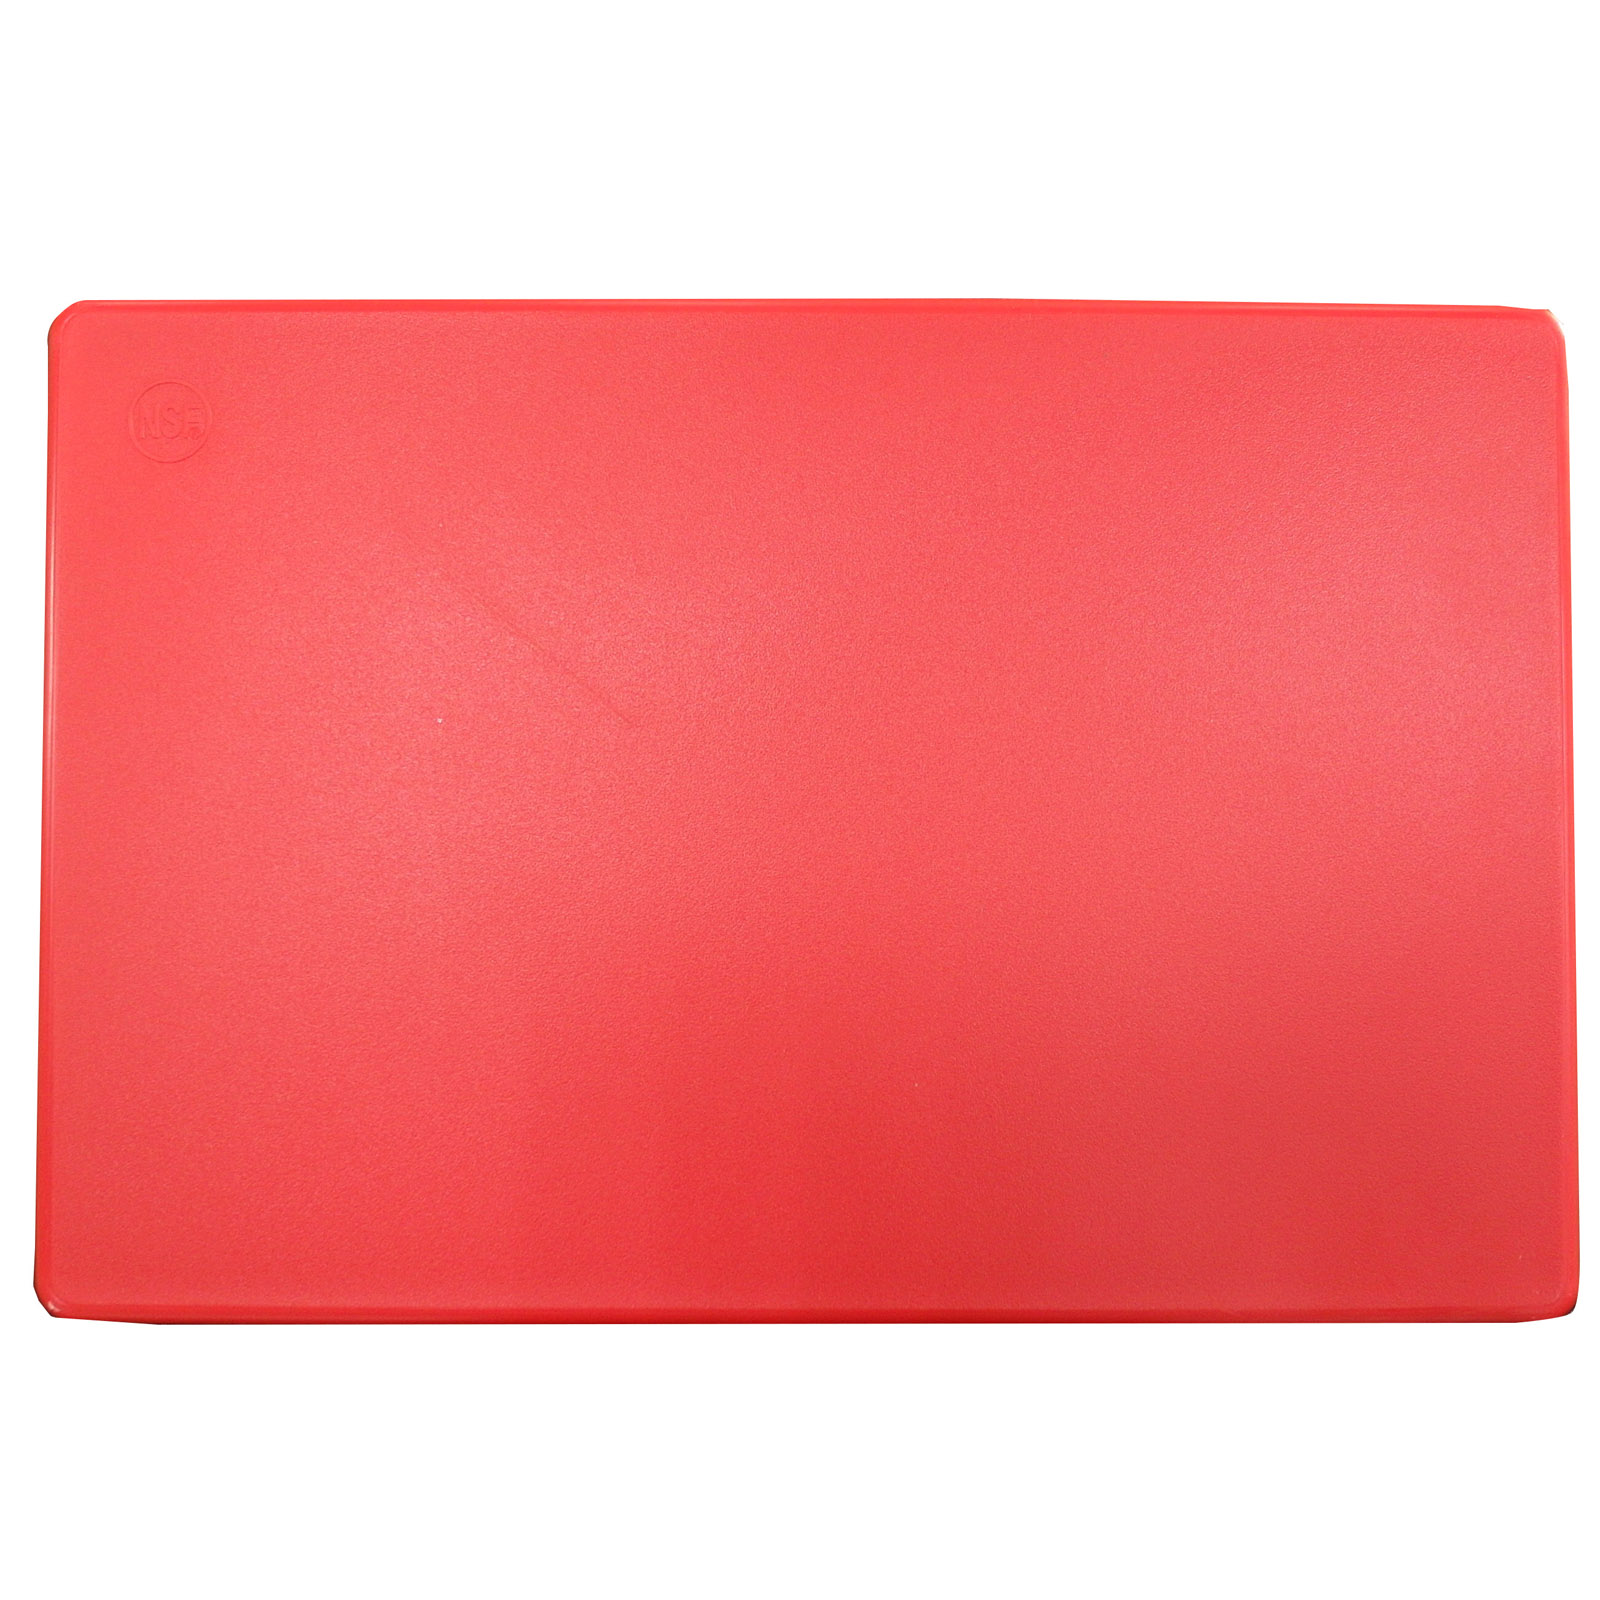 Admiral Craft HDCB-1218/RD cutting board, plastic